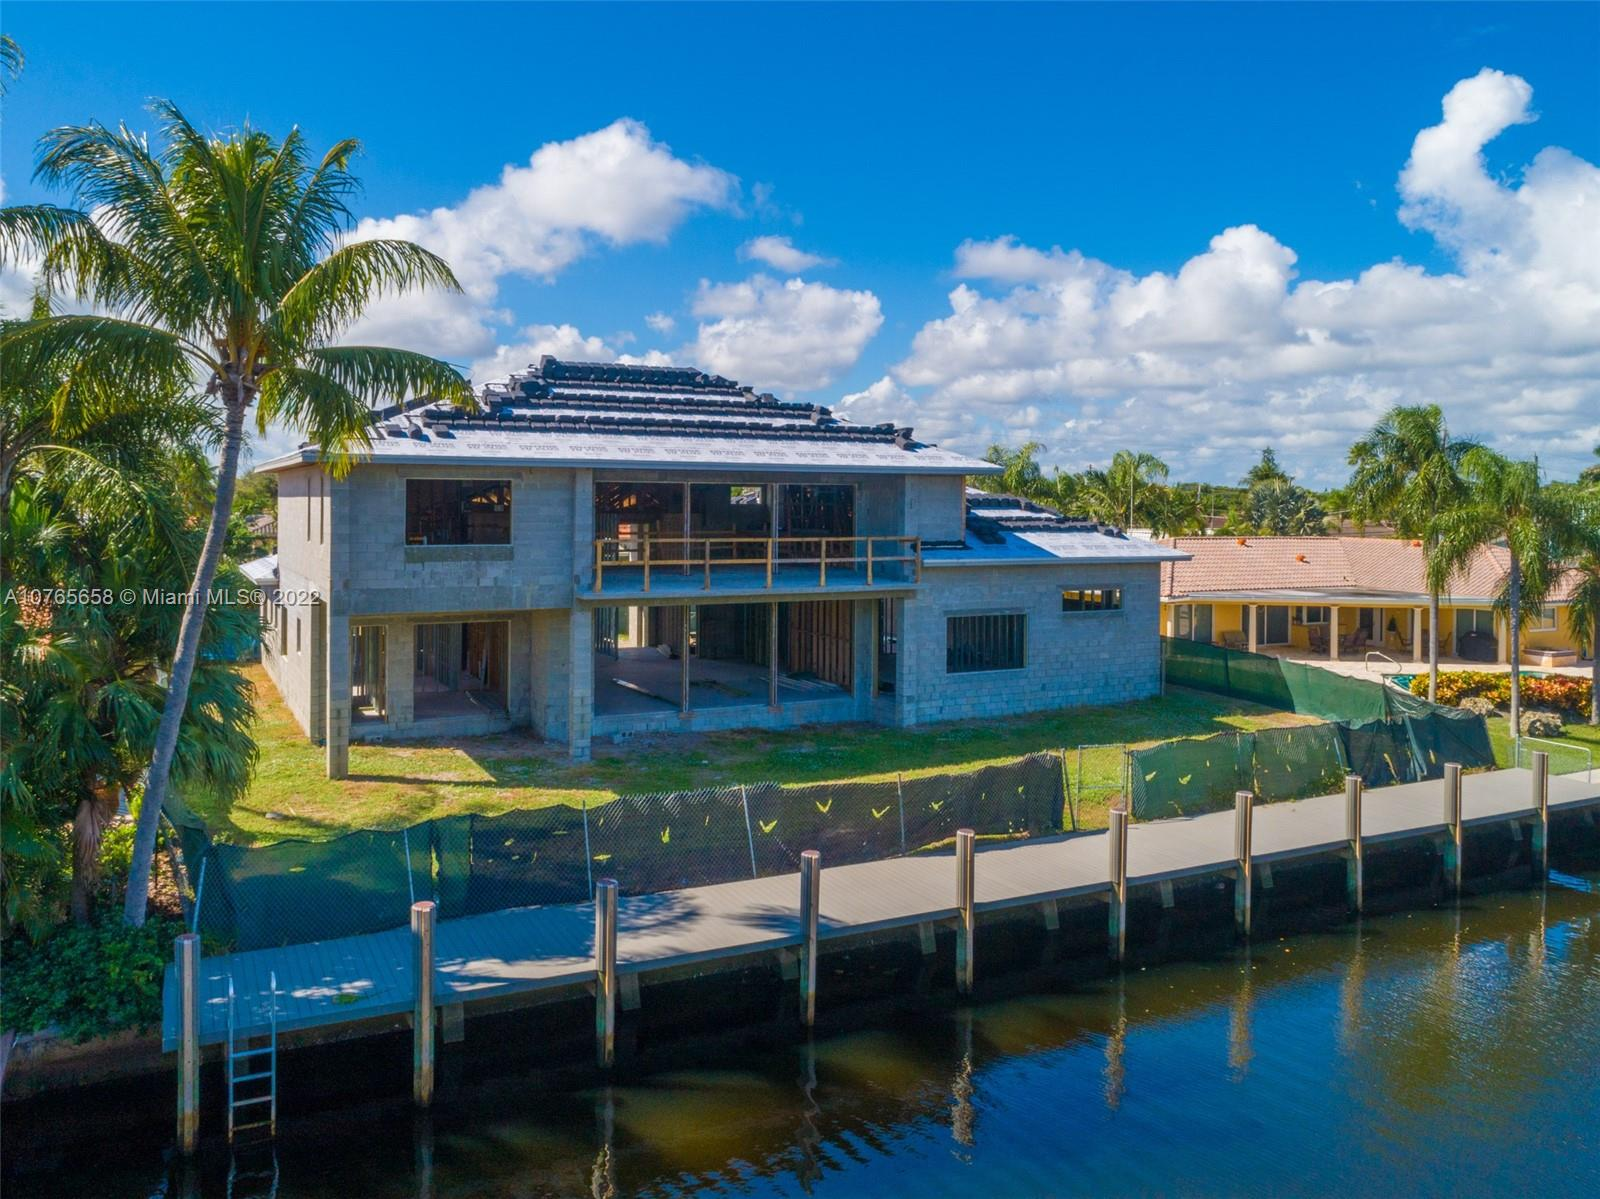 This BRAND NEW transitional modern deepwater estate sits on an oversized 12,000sf lot with 100ft of prime waterfrontage-- just one canal in from the Intracoastal. With incrediblewaterway views from every major room, this 5,500+/-sf home is an entertainer's dream. There's still time to pick finishes! Estimated completion- Summer 2020.